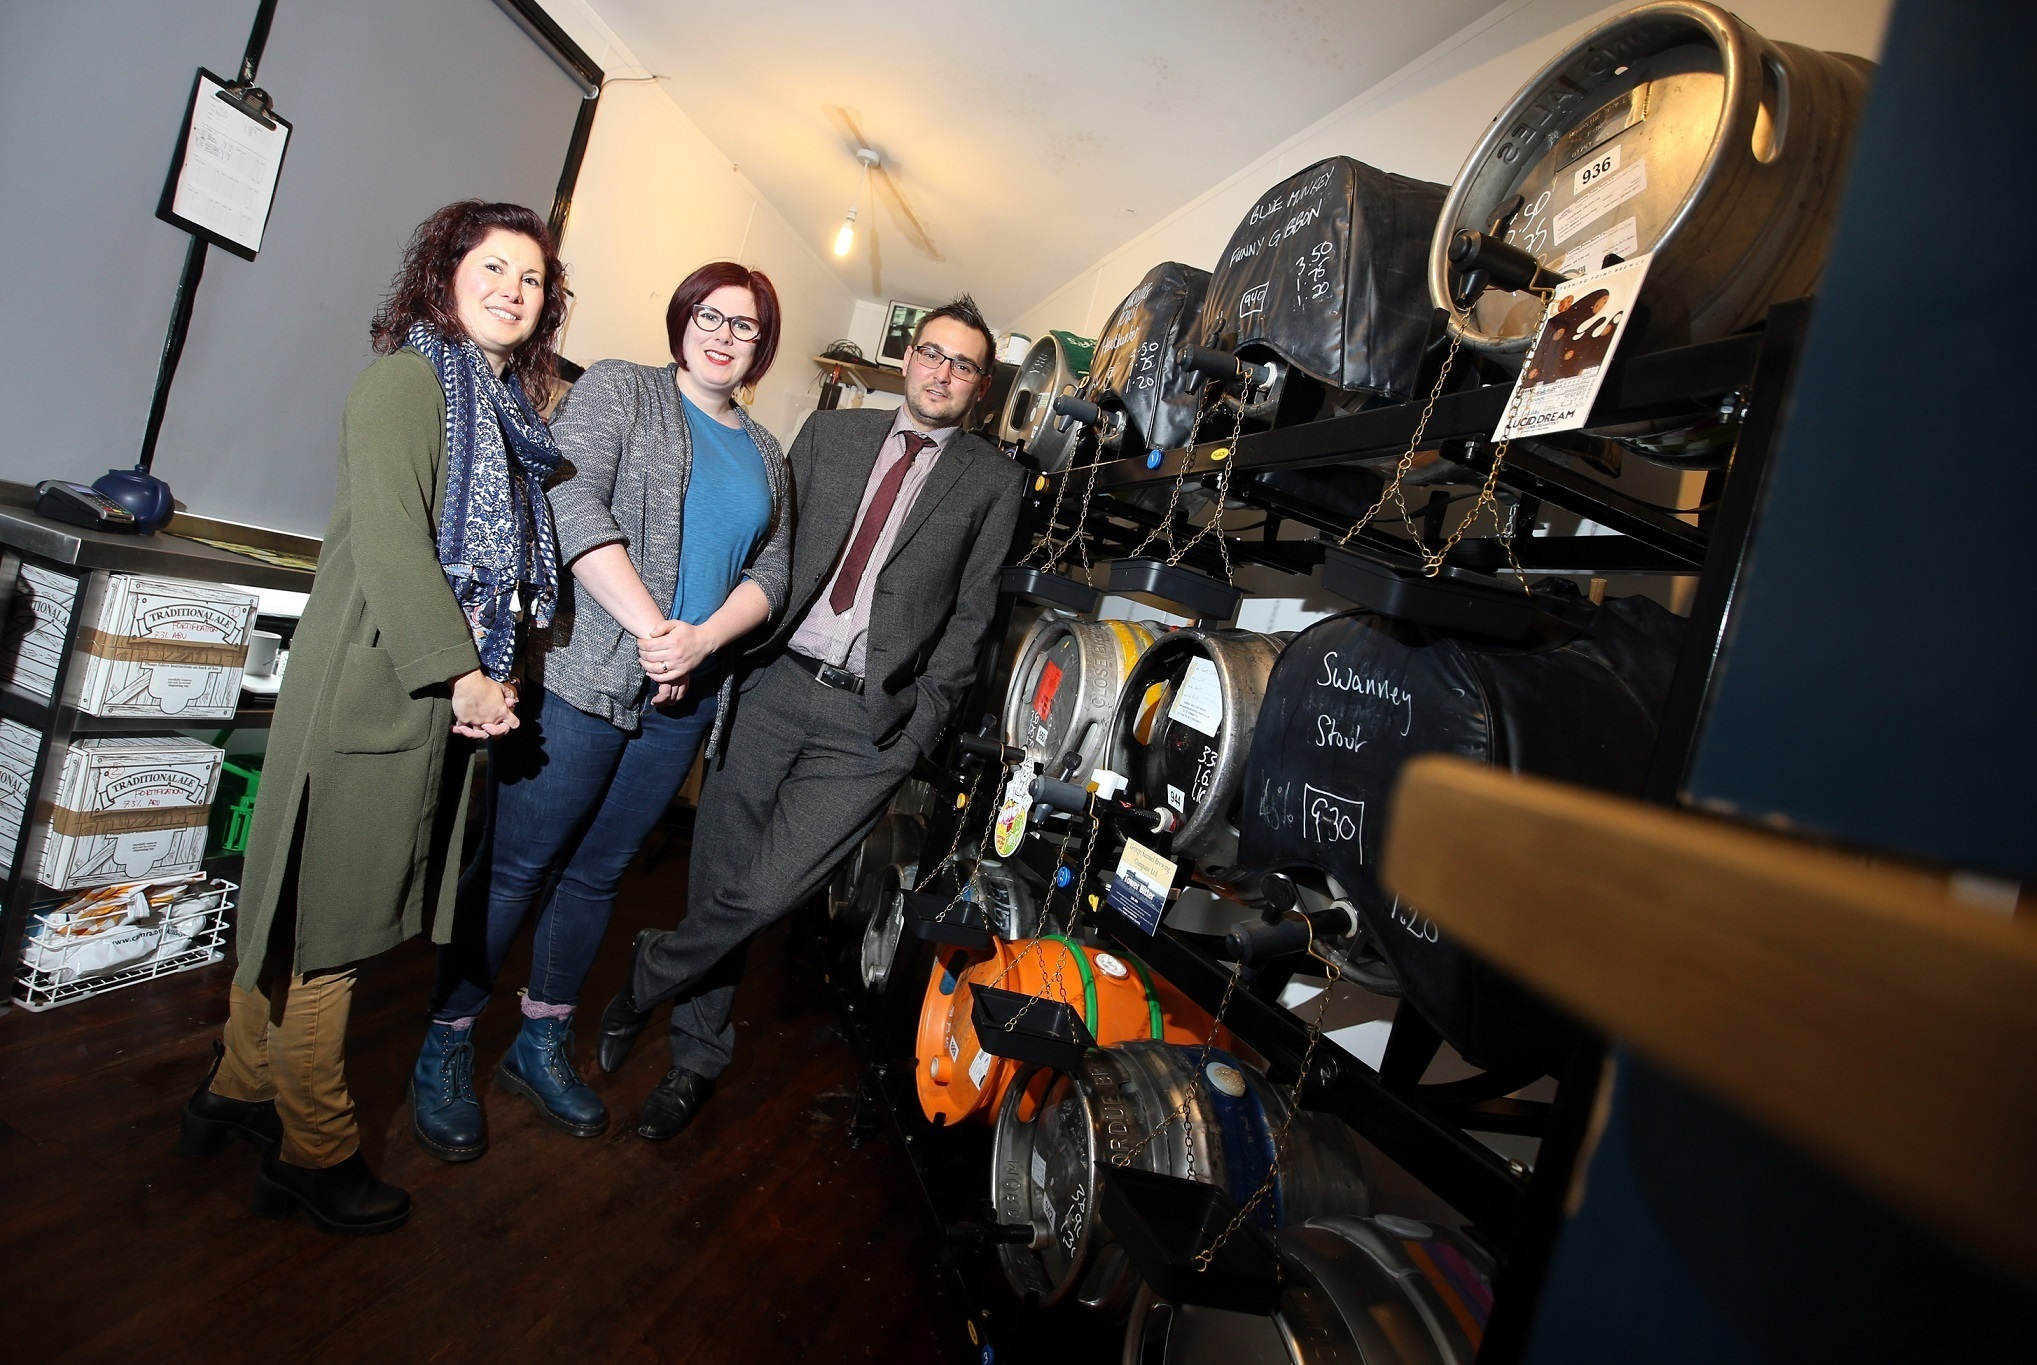 CHEERS: (l-r) Sarah Billingham, Durham County Council project officer; Susannah Mansfield, director and landlady of The Station House; and Cllr Carl Marshall, Durham County Council's Cabinet member for economic regeneration